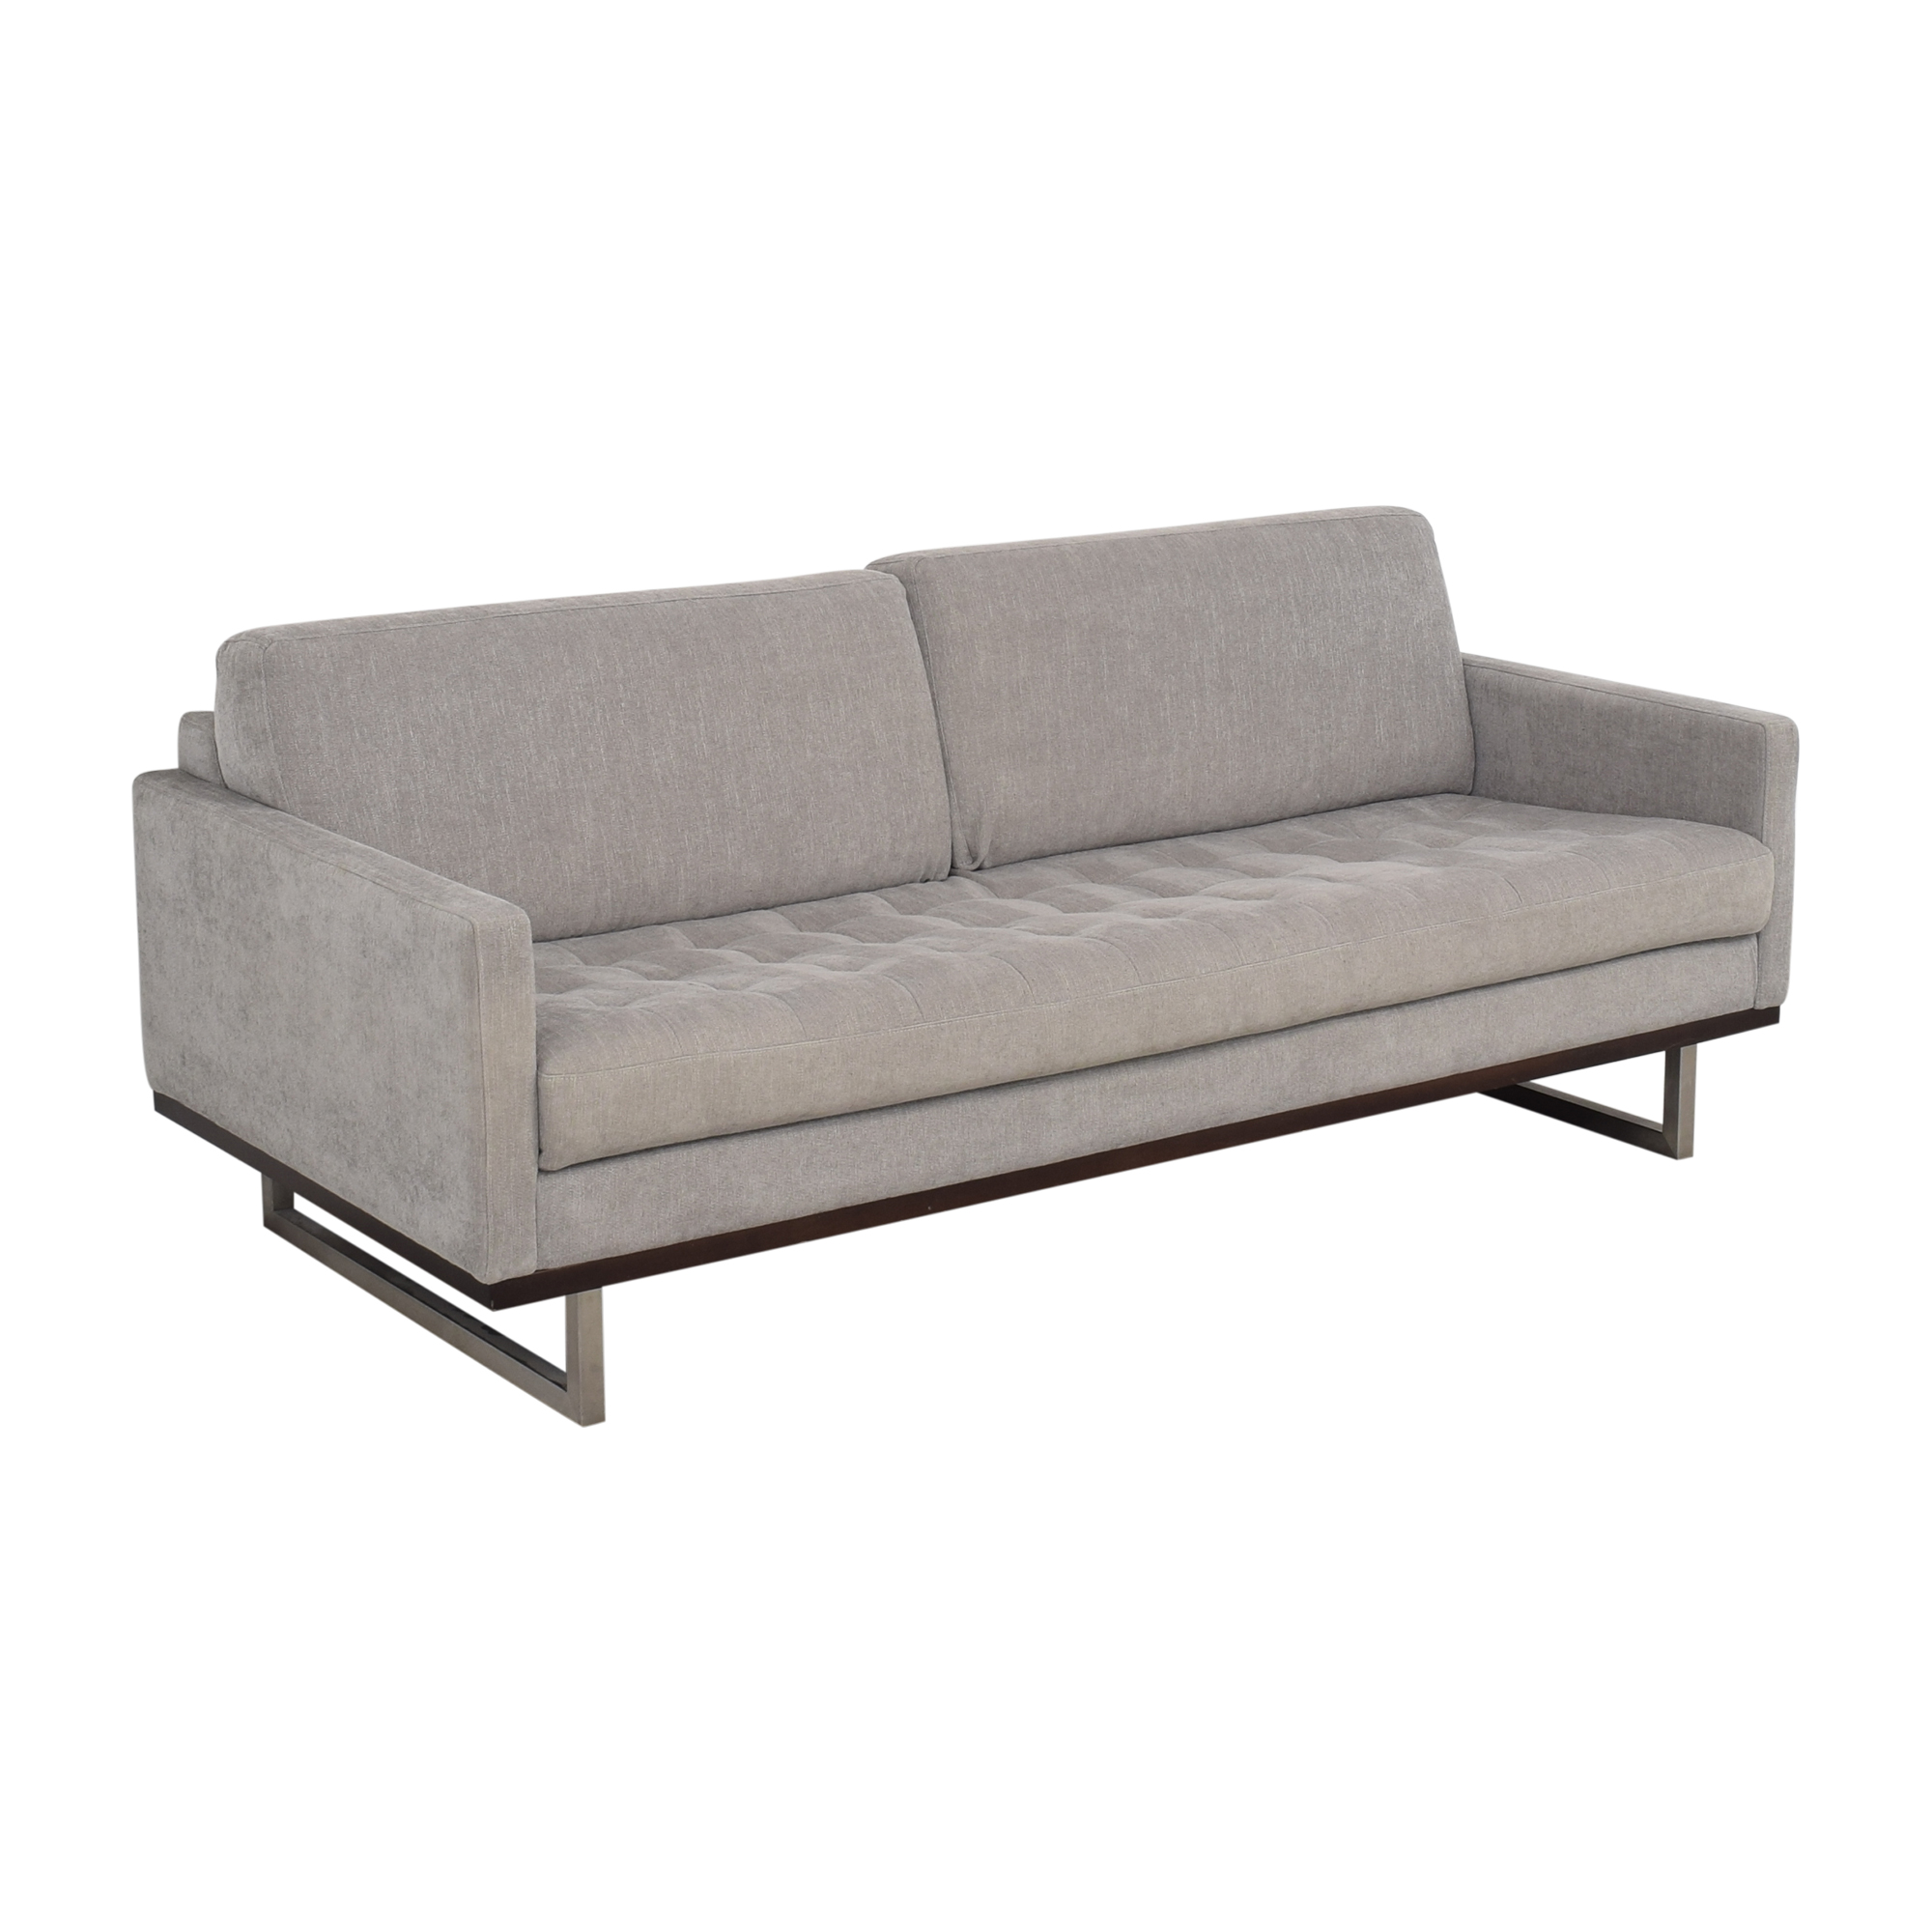 buy American Leather Tristan Sofa American Leather Sofas